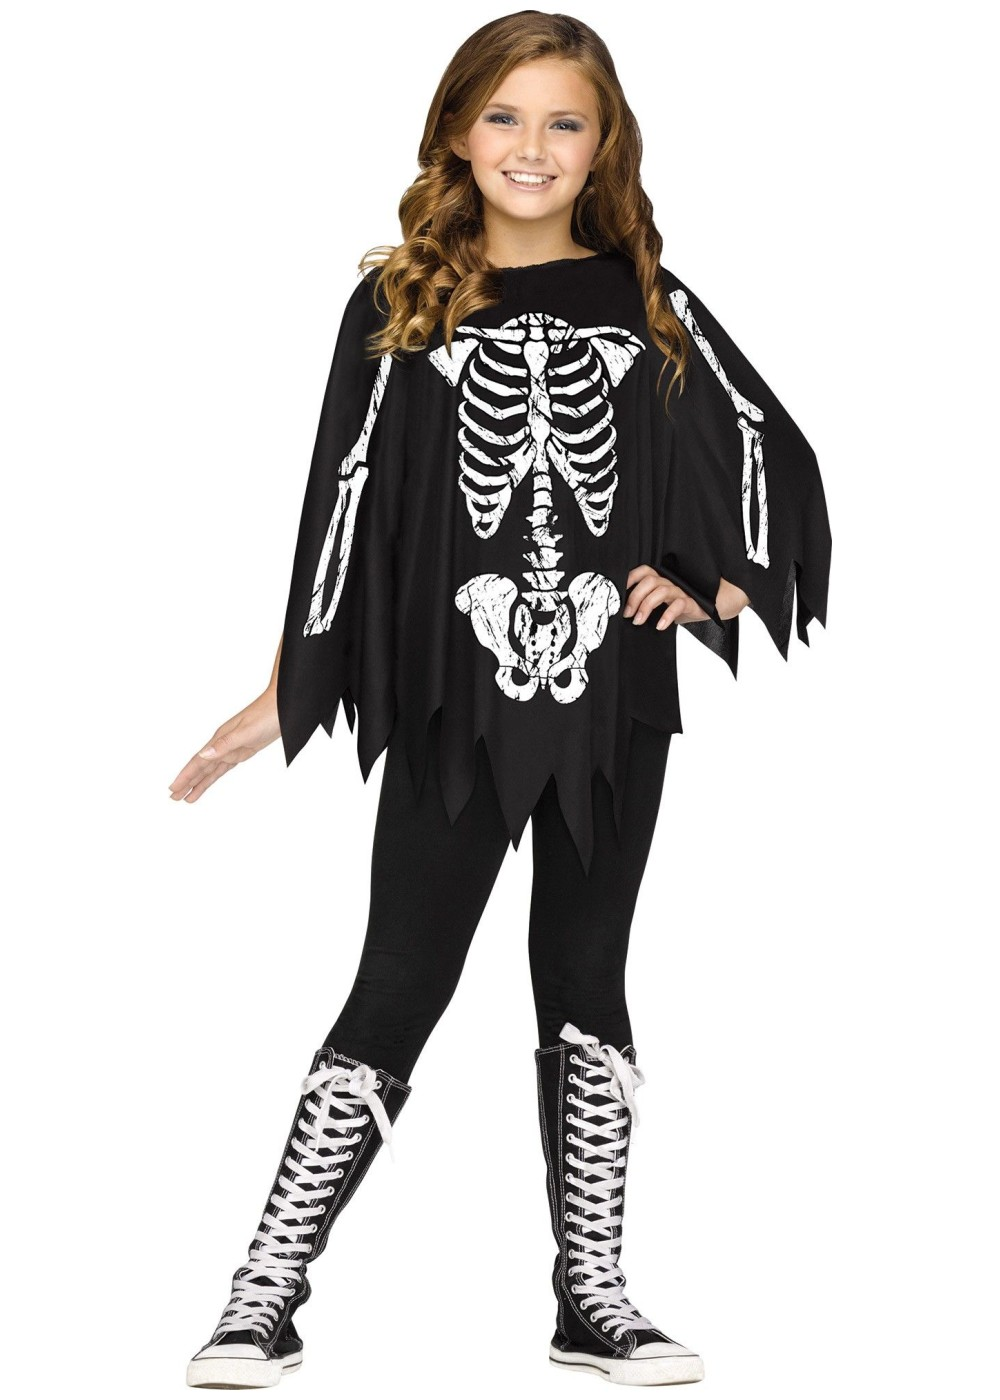 Cheerleader Halloween Costumes For Kids